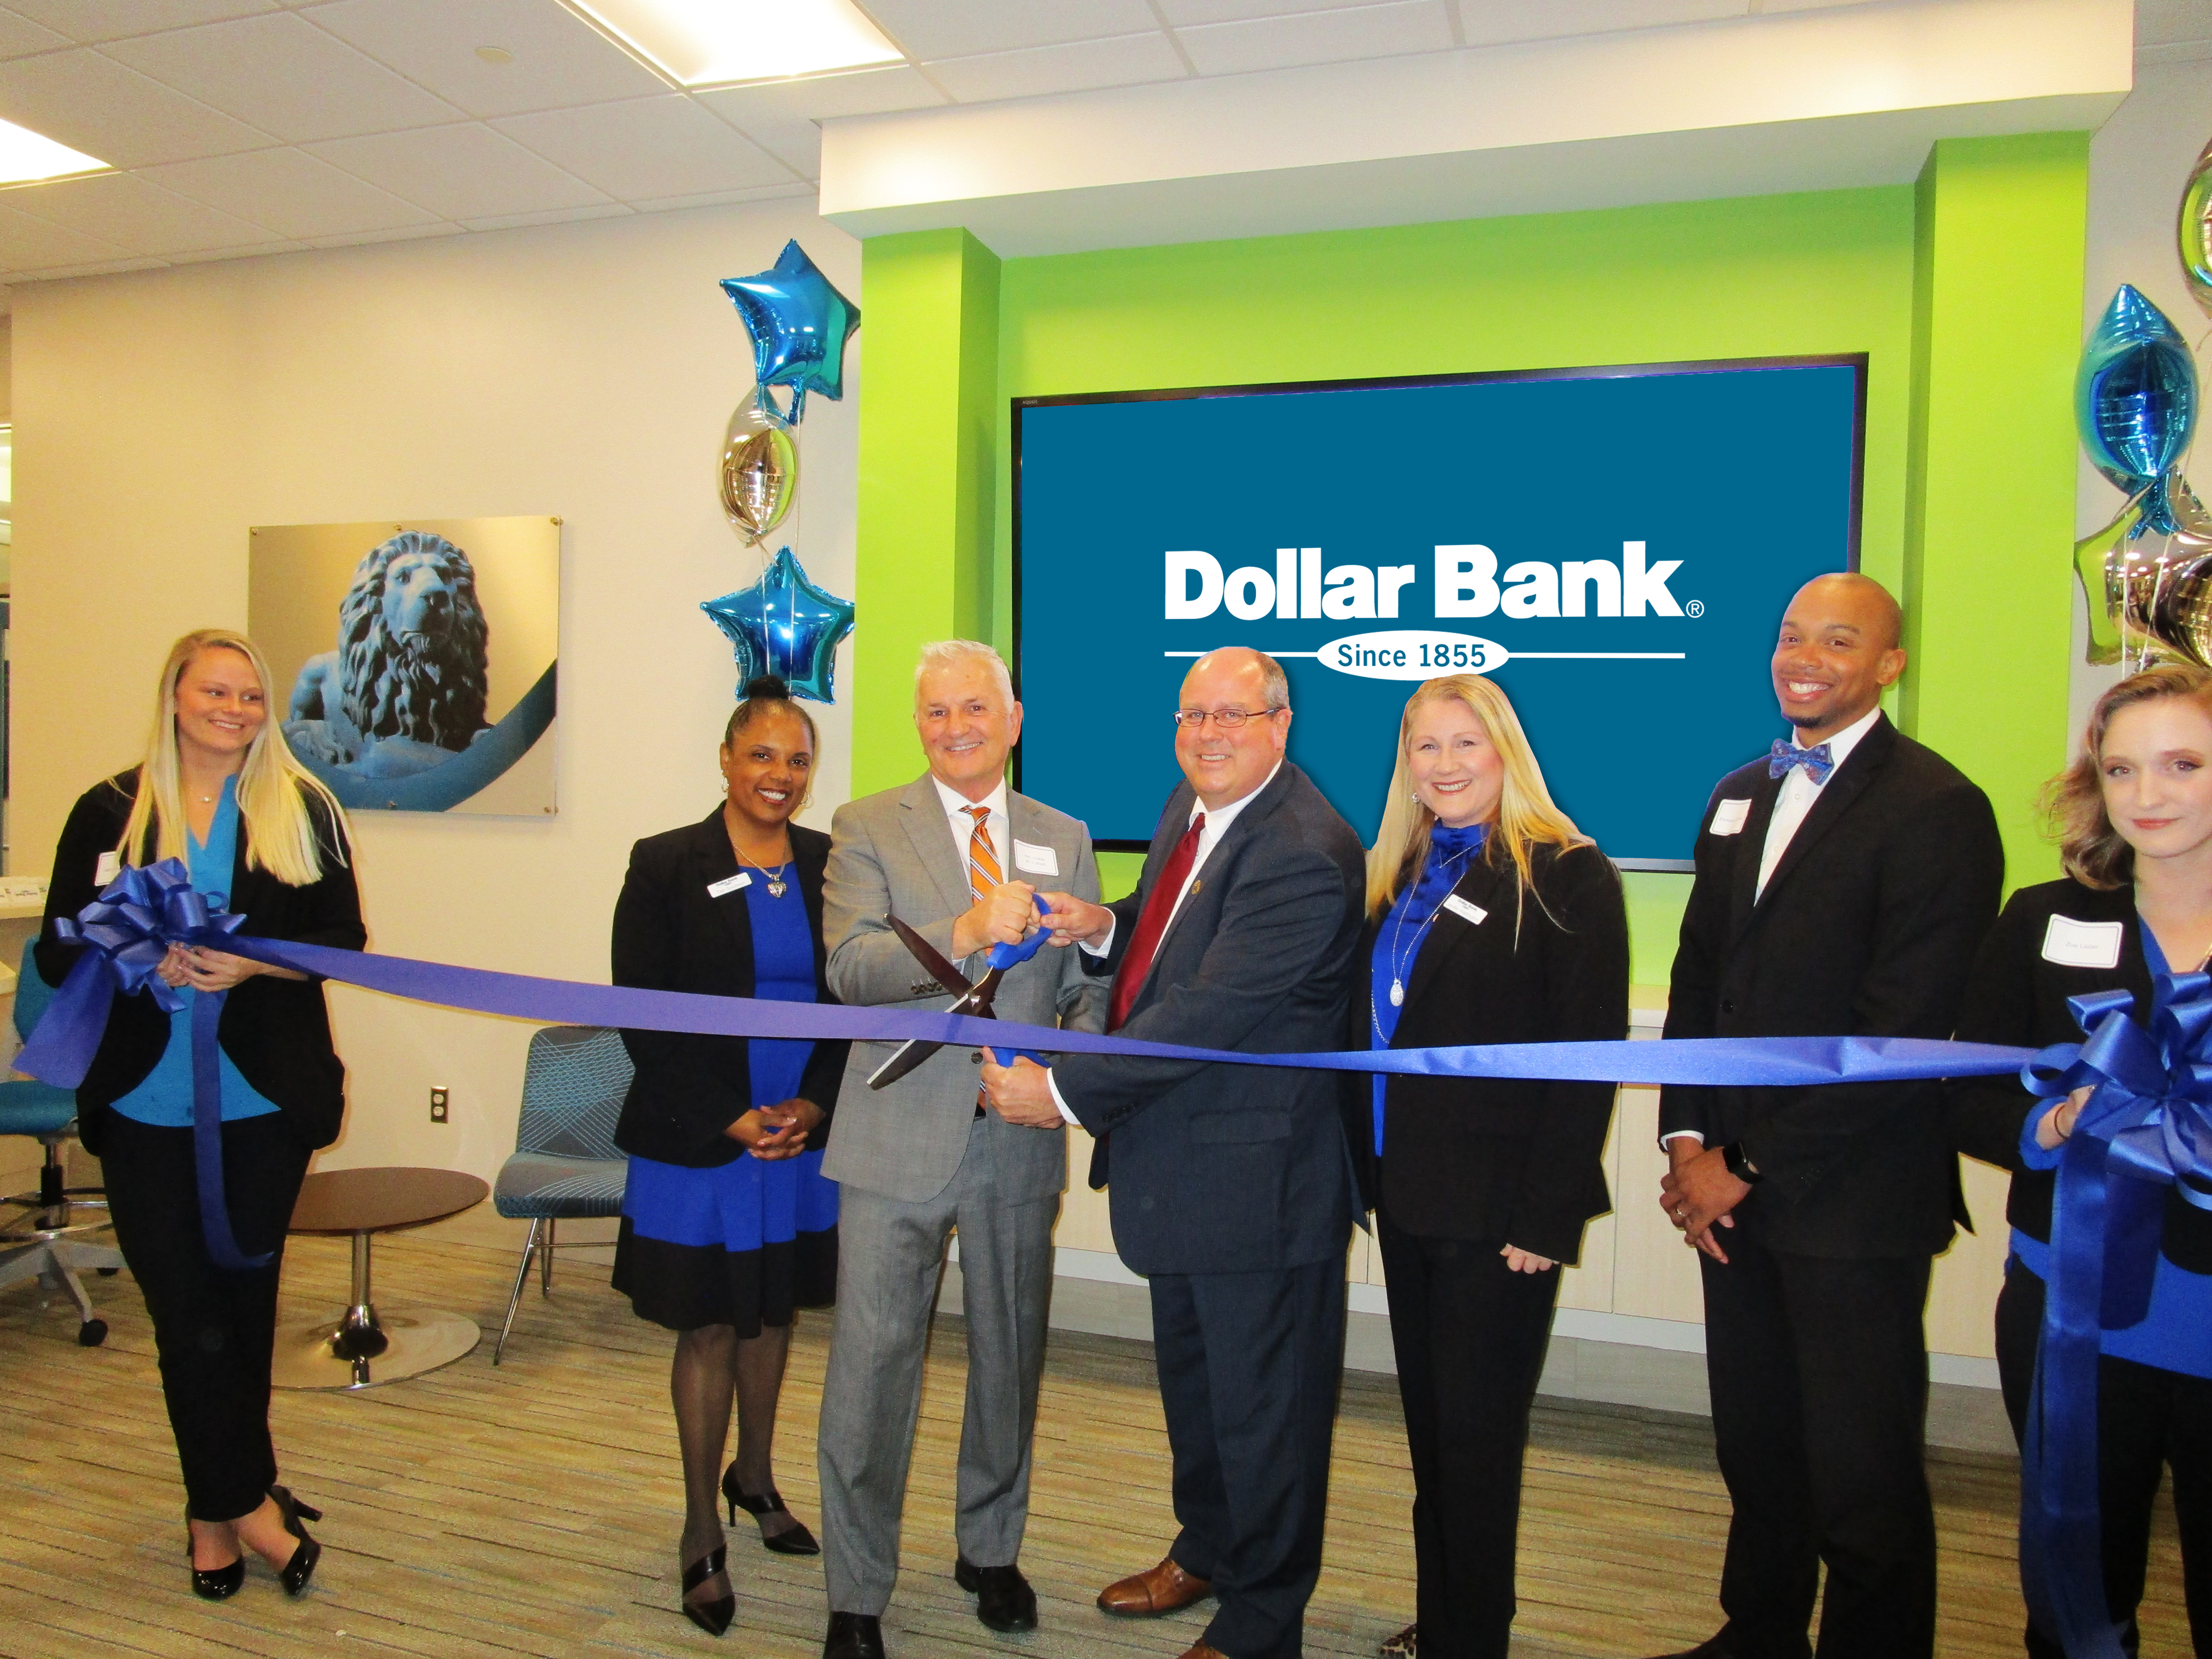 Dollar Bank Opens Volvo Office